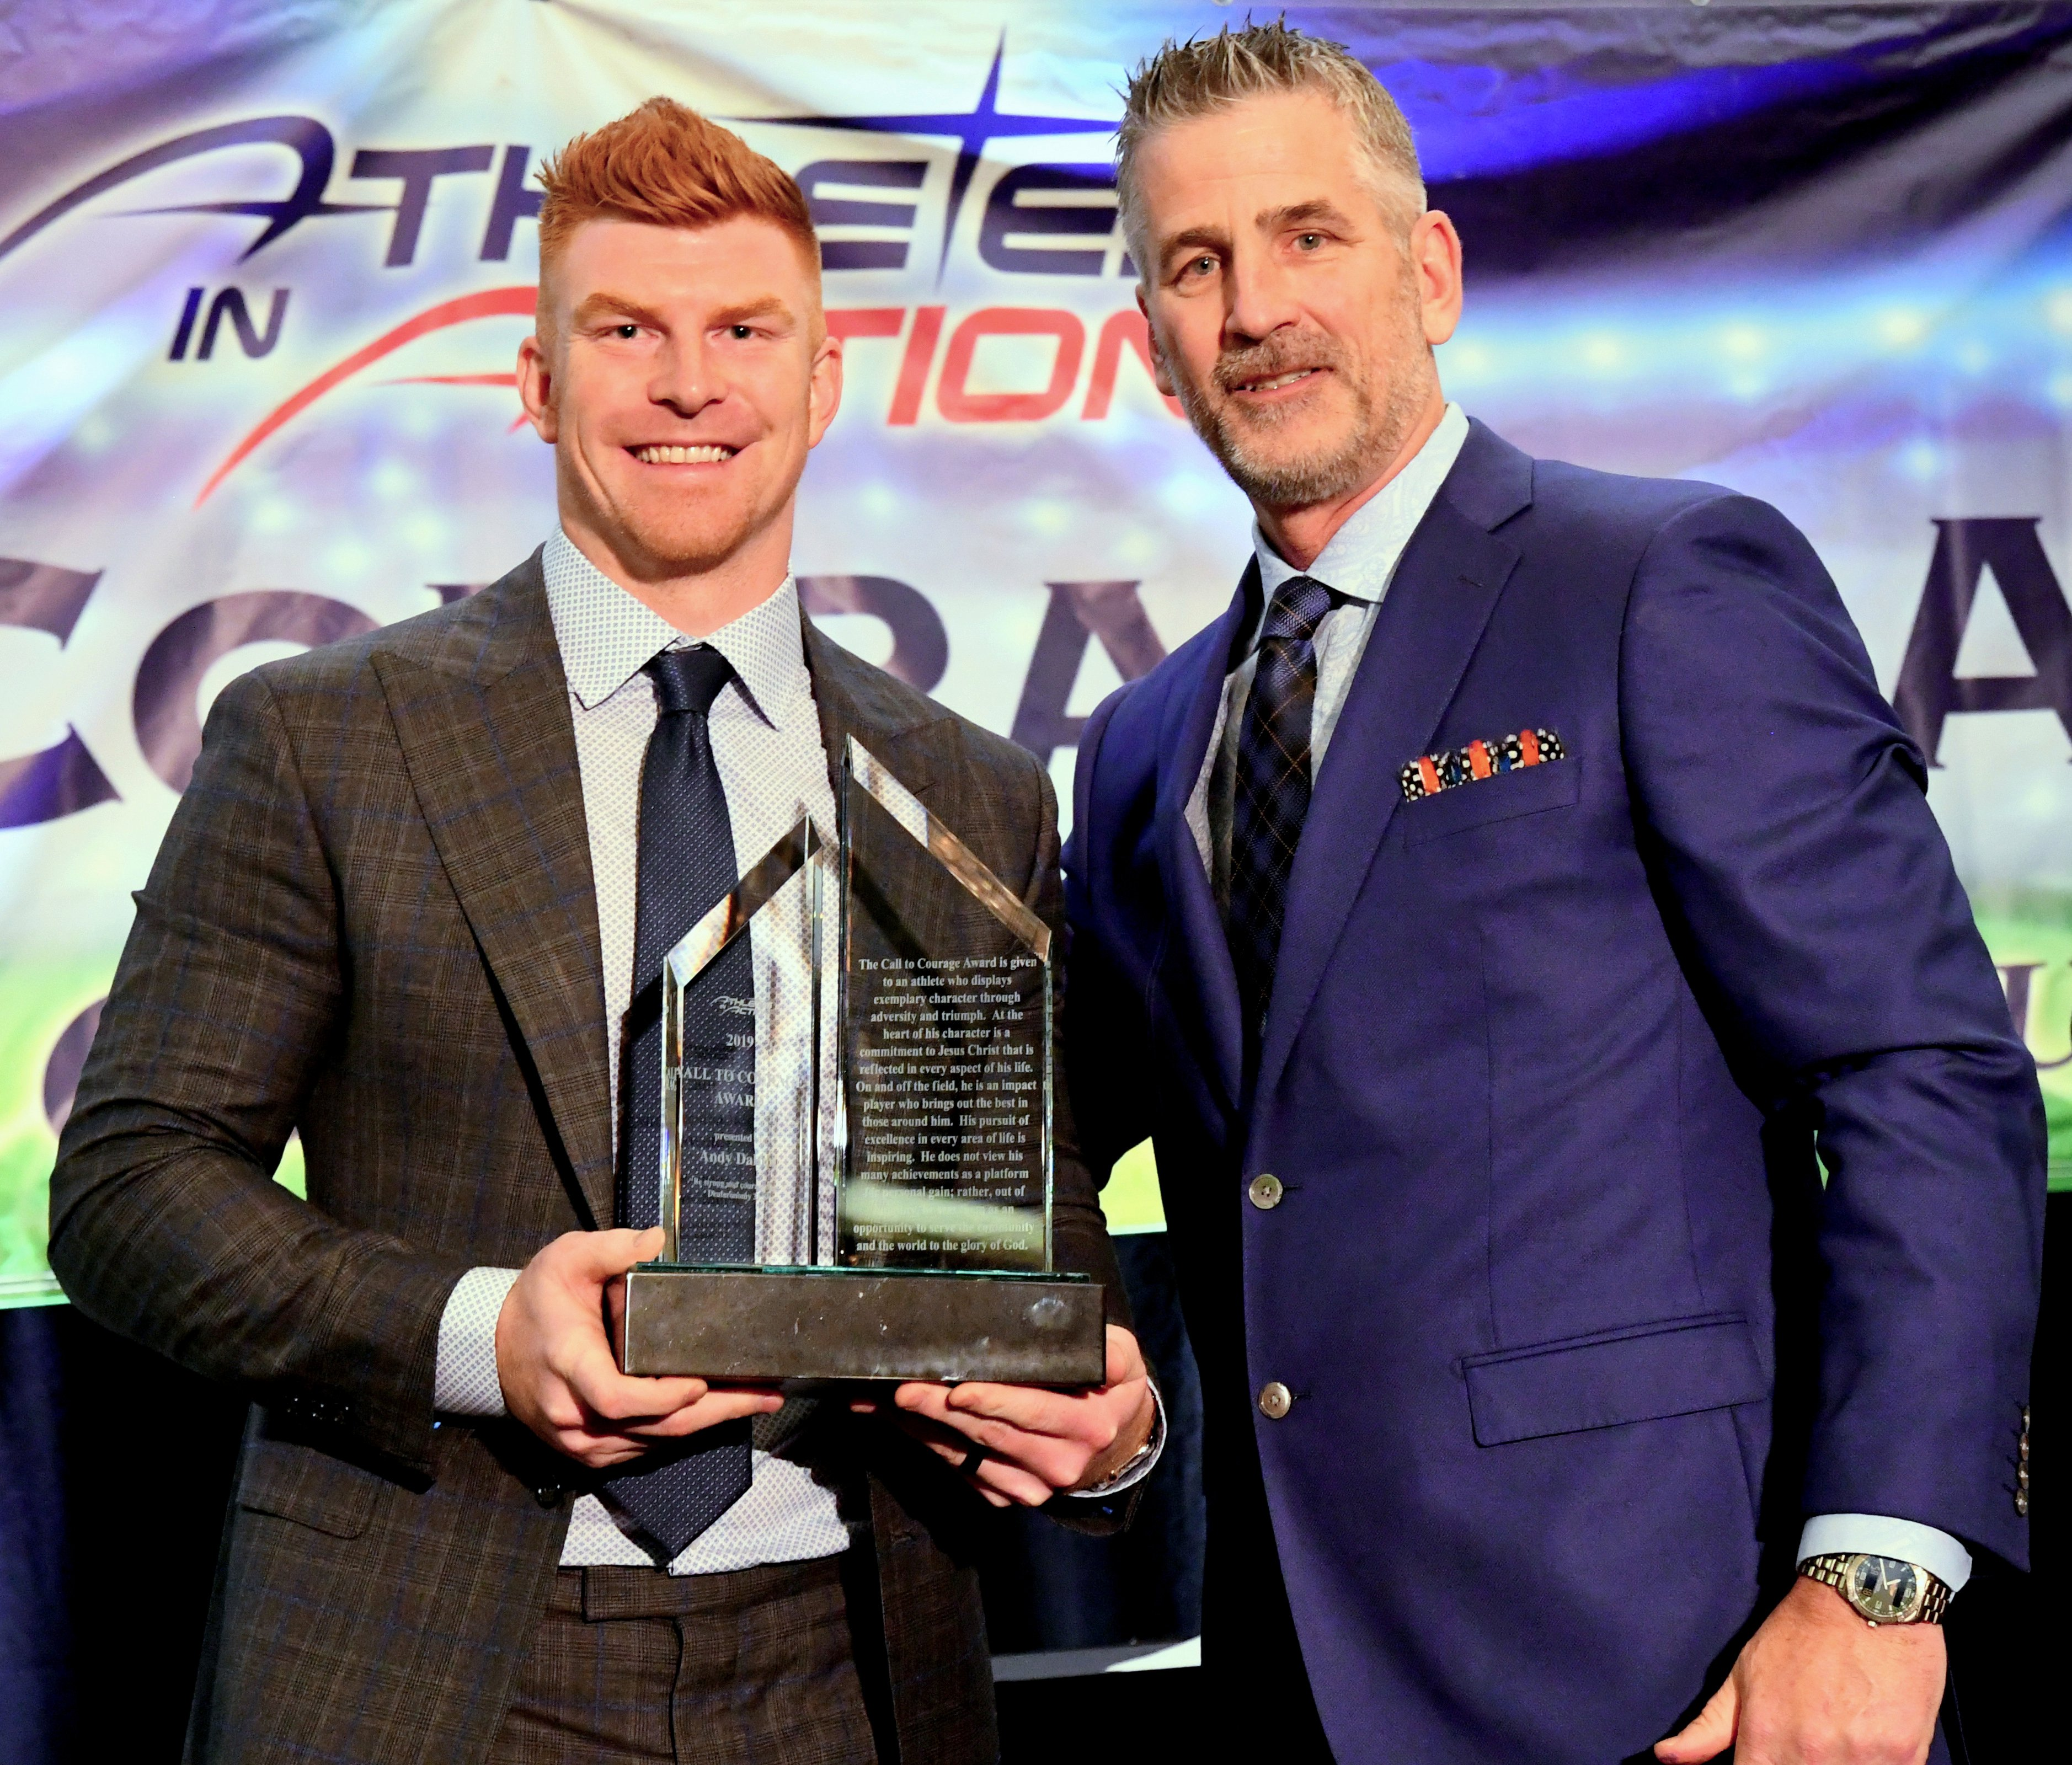 Buffalo Bills Alumni & Head Coach of the Indianapolis Colts Frank Reich presents the 2019 Call to Courage Award to Cincinnati Bengals QB Andy Dalton